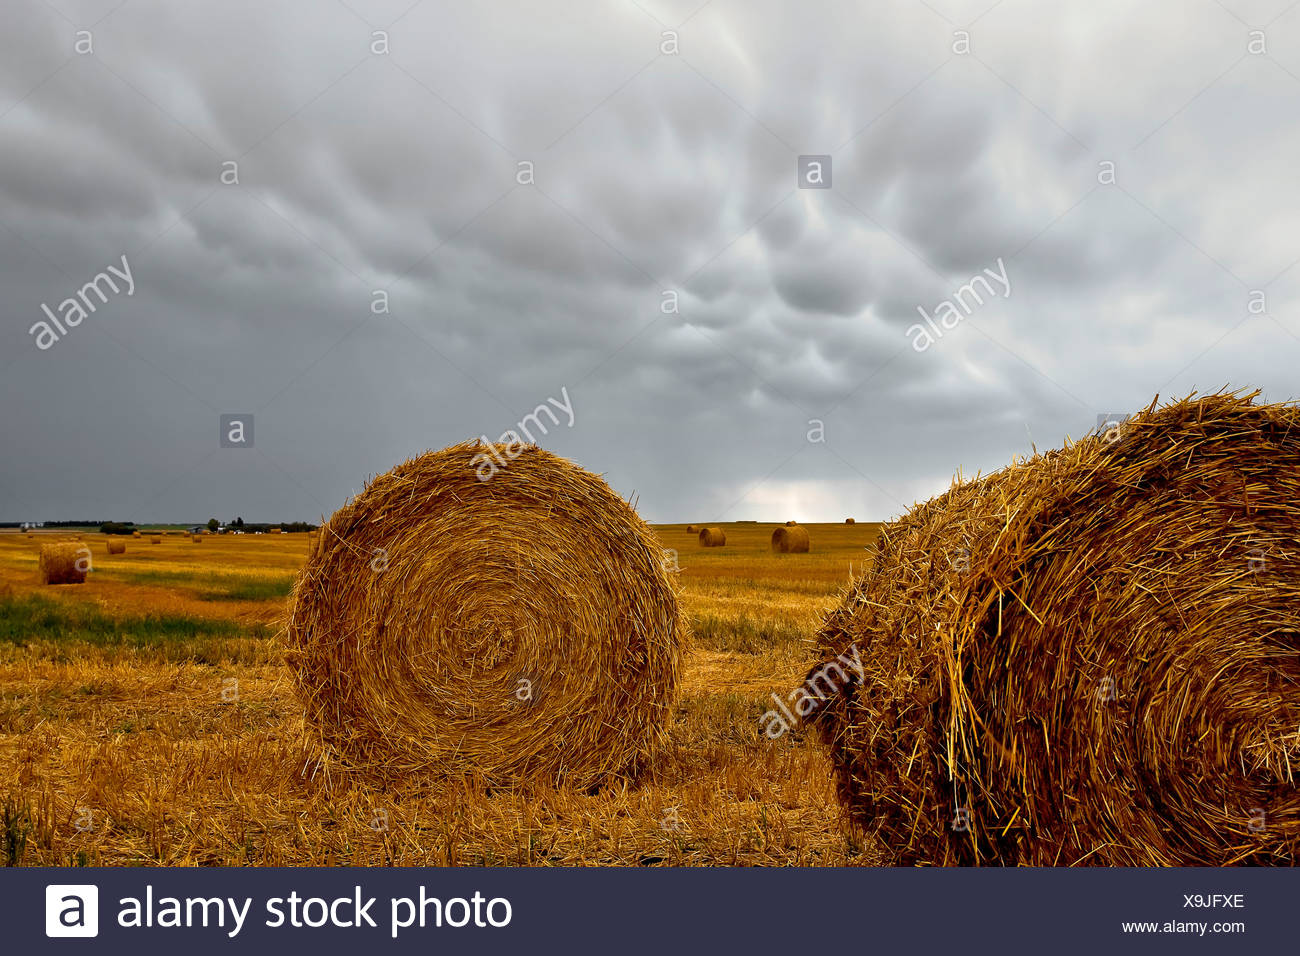 Hay bails and mammatus cloud formations. St. Leon, Manitoba, Canada. - Stock Image